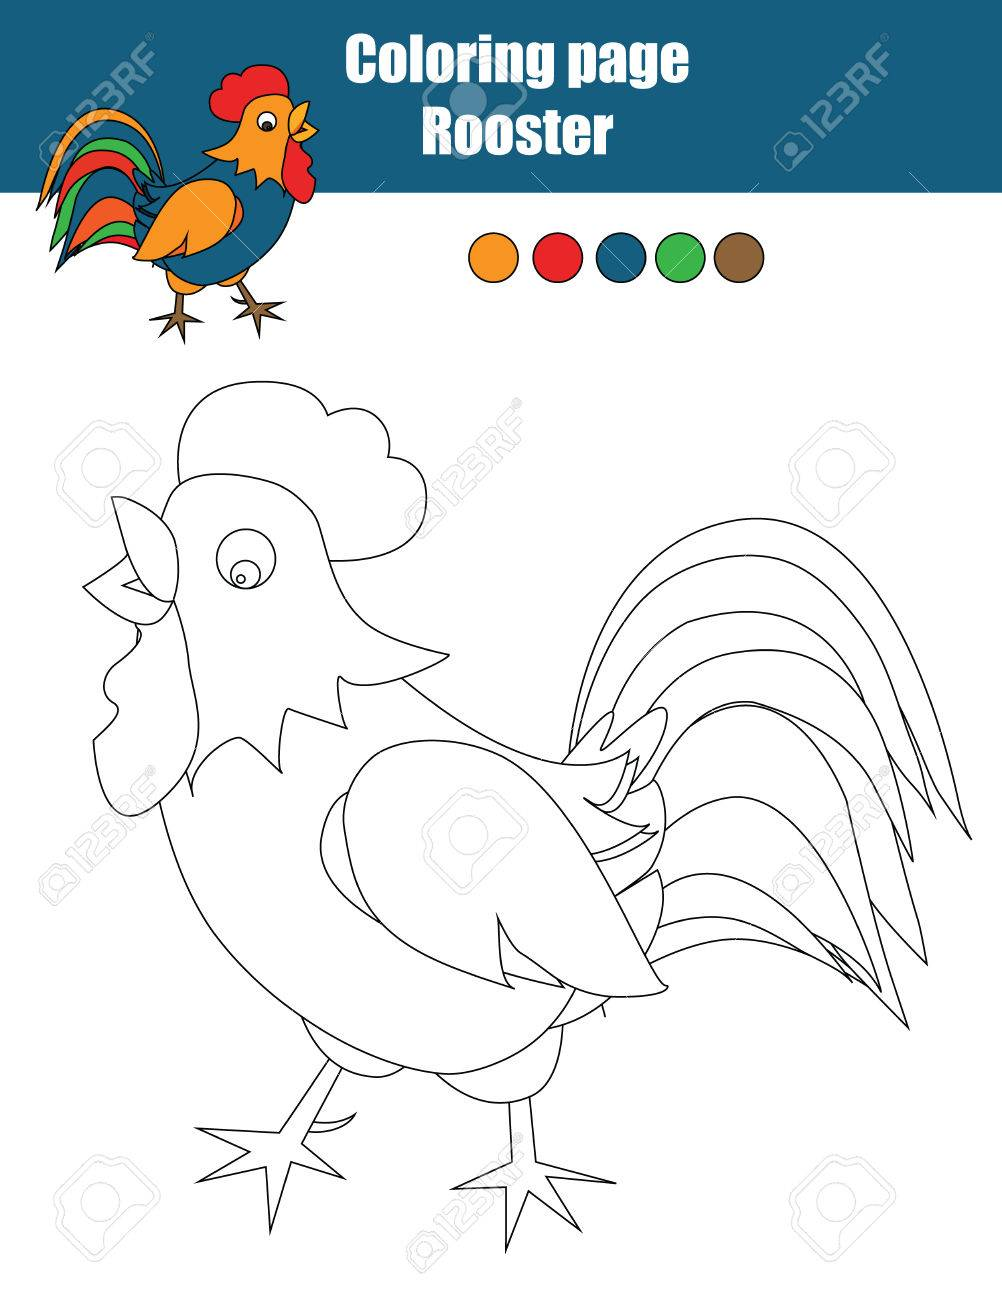 coloring page with color the rooster drawing activity